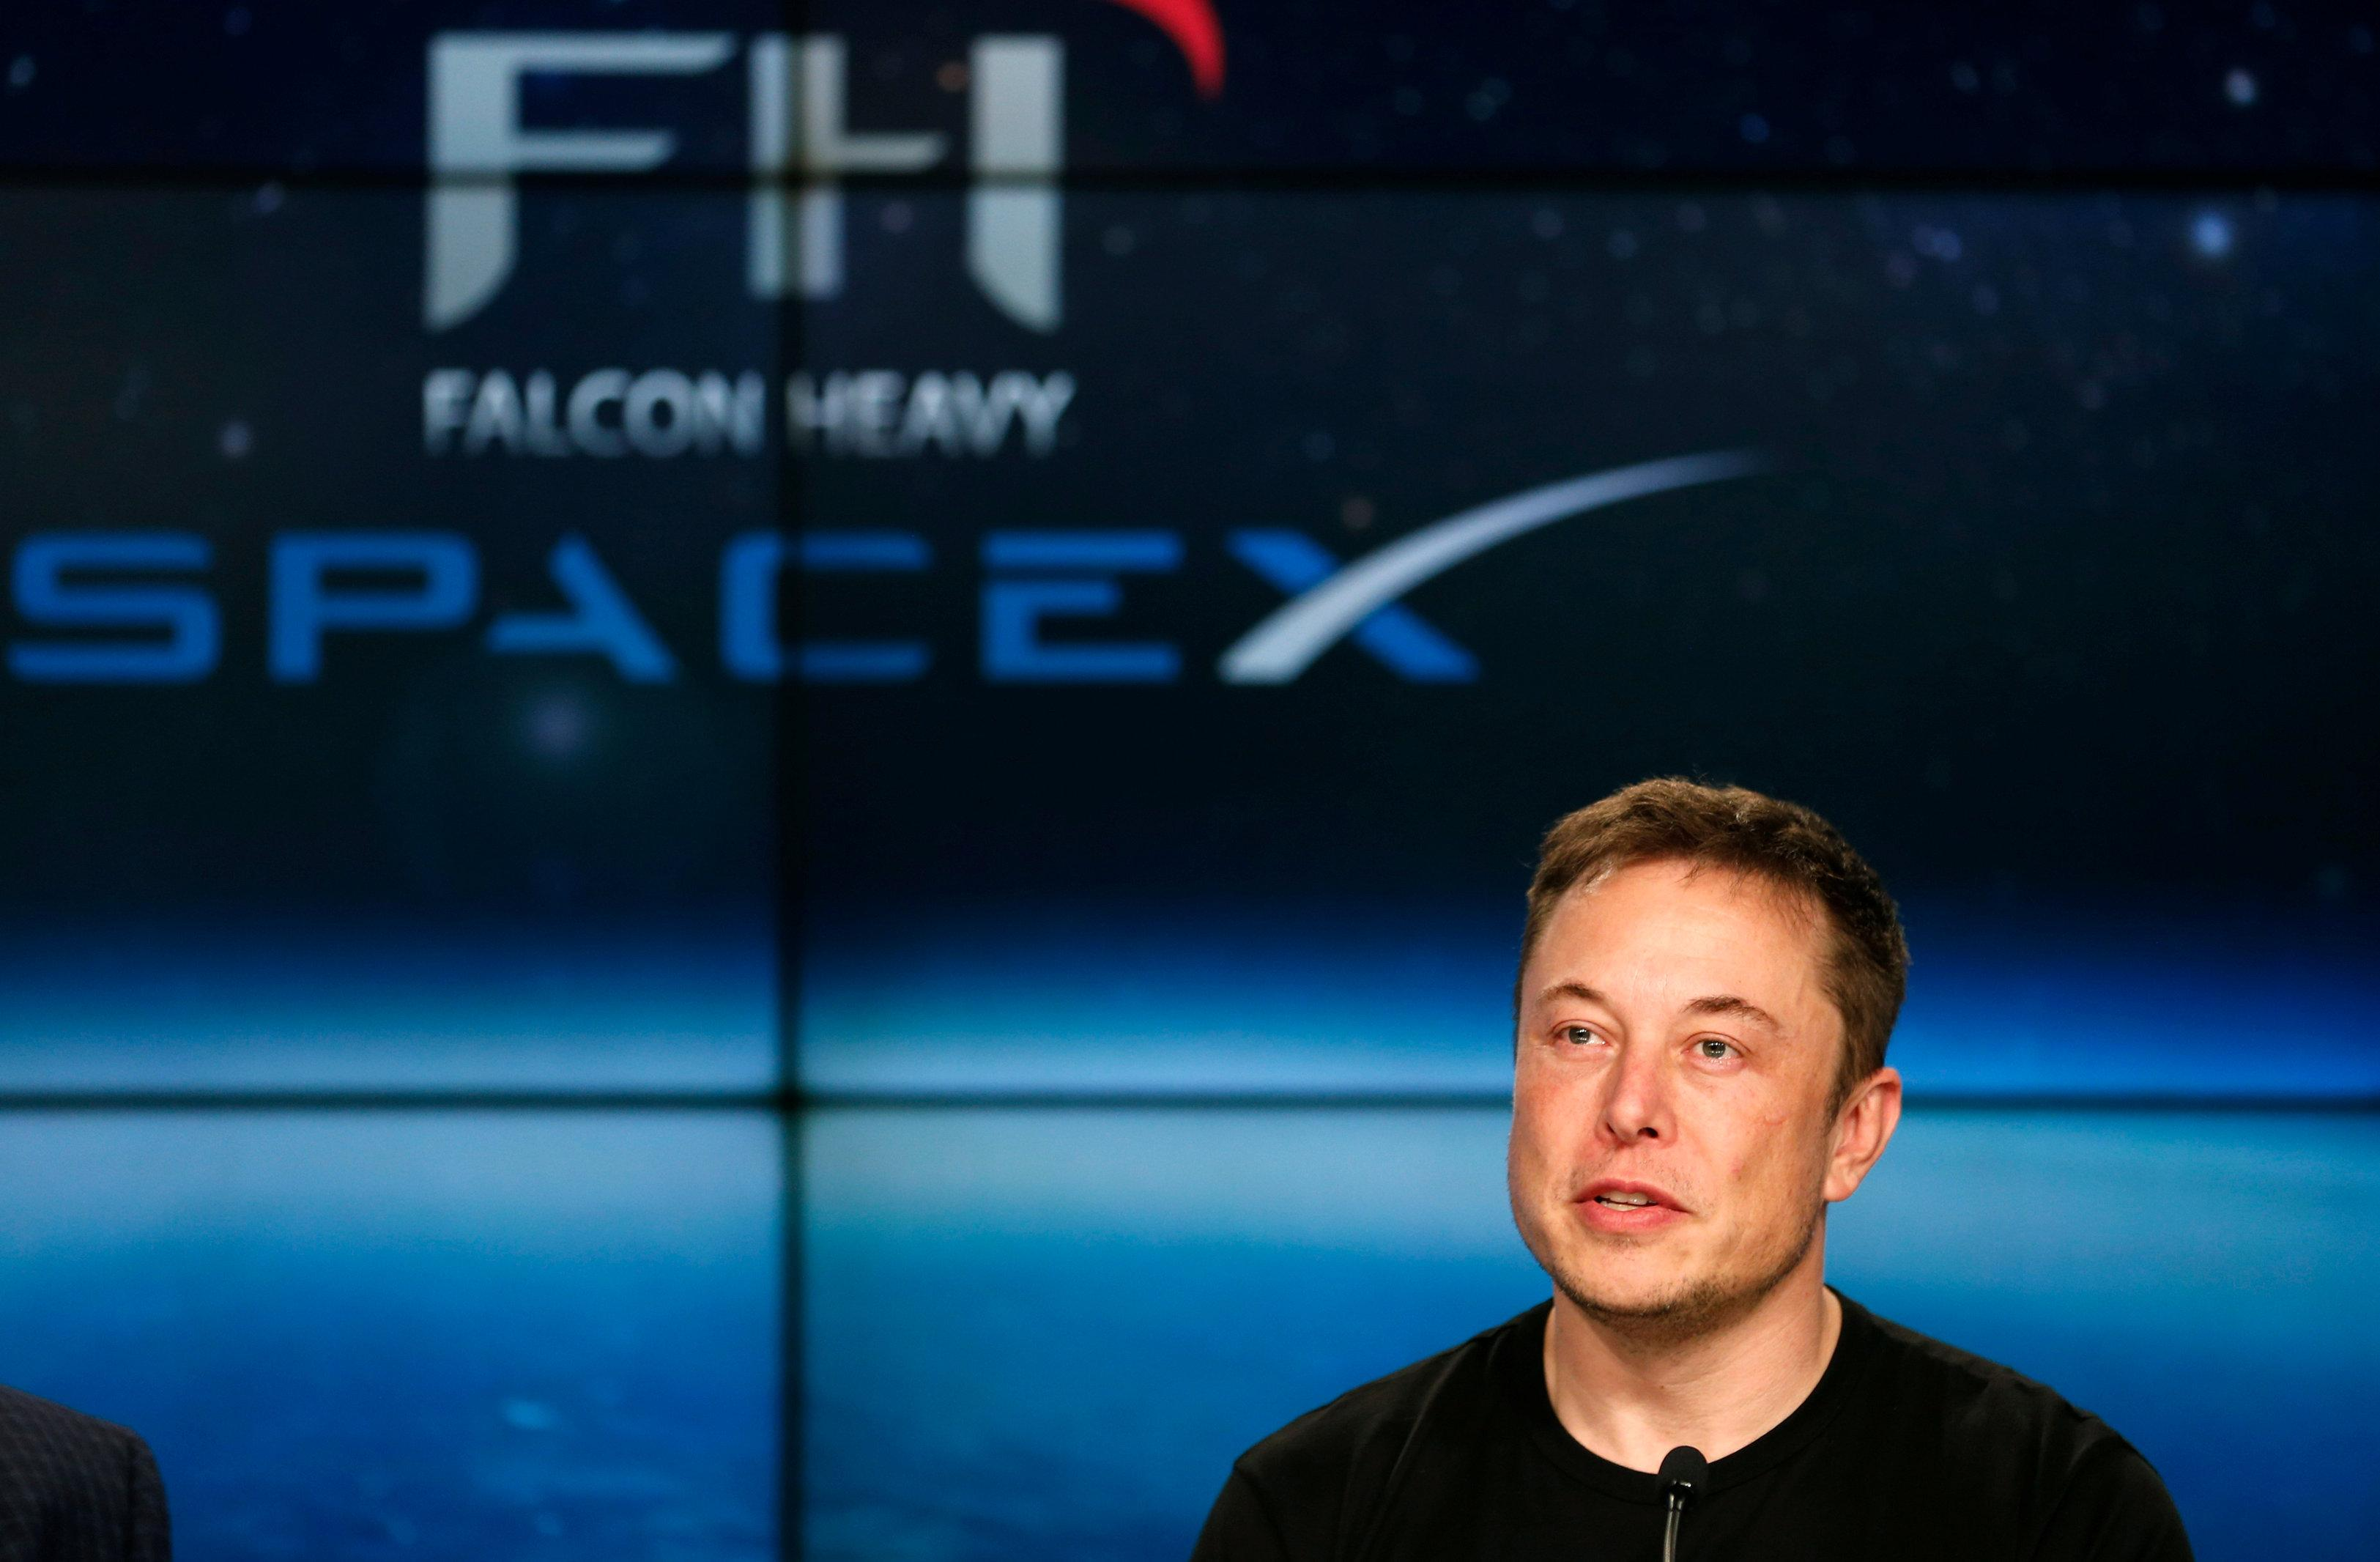 SpaceX founder Elon Musk speaks at a press conference following the first launch of a SpaceX Falcon Heavy rocket at the Kennedy Space Center in Cape Canaveral, Florida, U.S., February 6, 2018. Joe Skipper